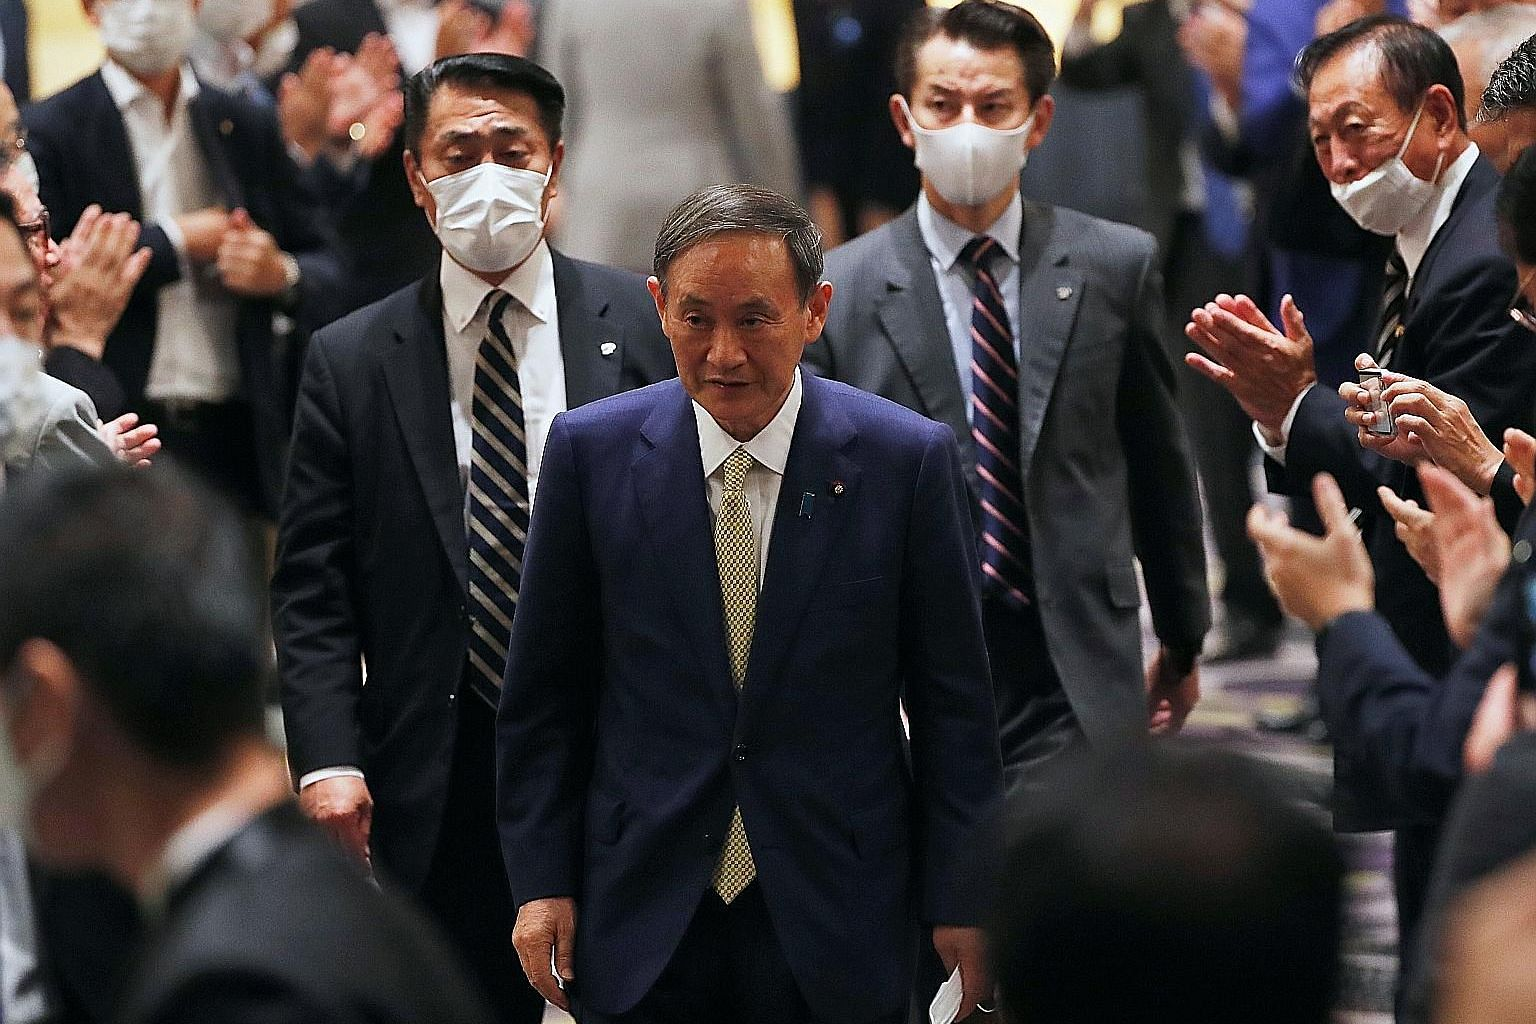 Japan's Chief Cabinet Secretary Yoshihide Suga in Tokyo last Tuesday after officially kicking off his campaign rally for the ruling Liberal Democratic Party's (LDP) presidential election. He wields tremendous political and bureaucratic influence, tak